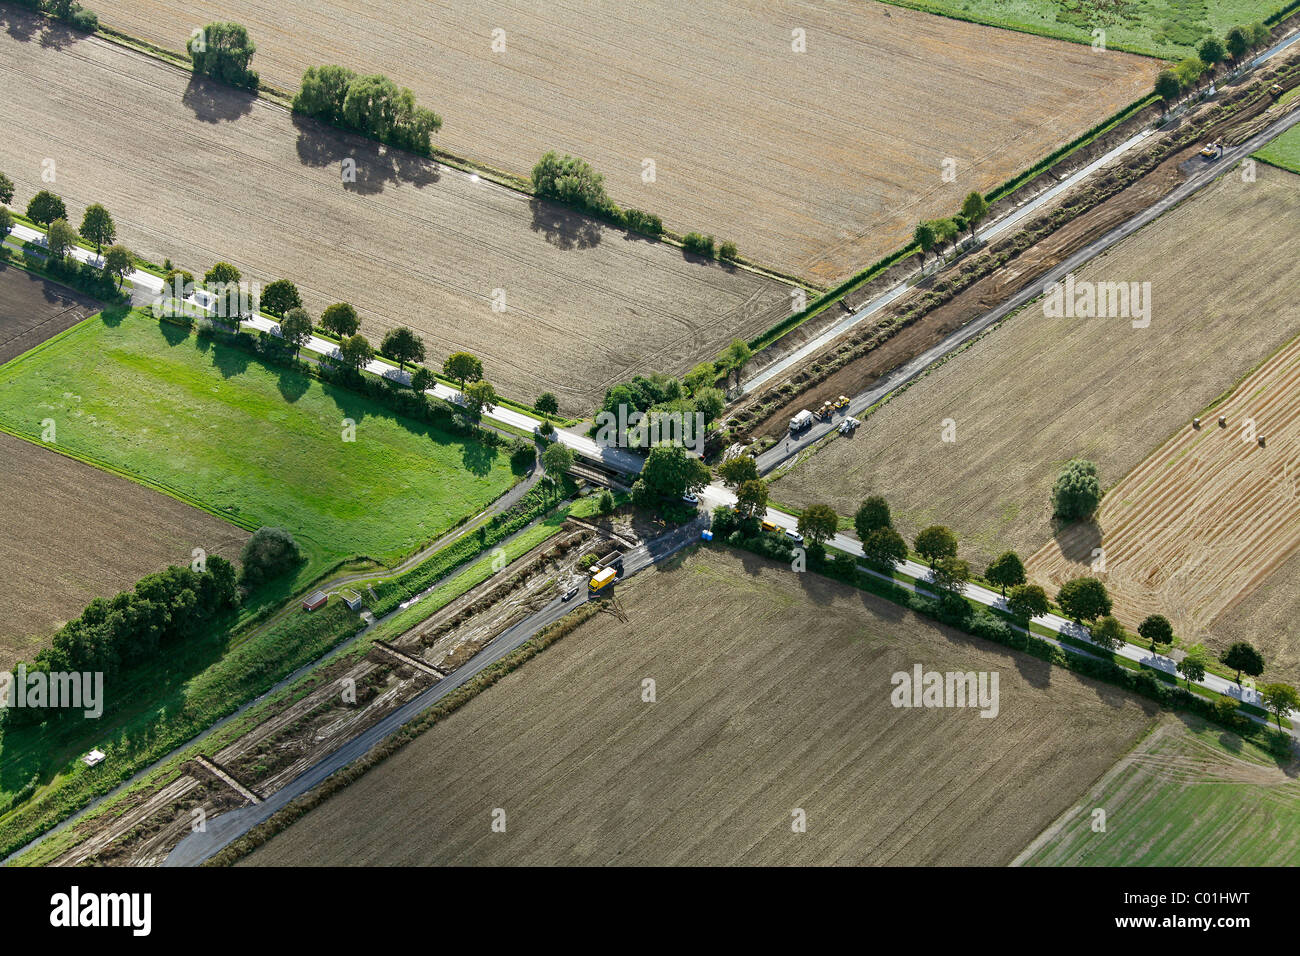 Aerial view, SesekeKunst art project, Reservat art project, Markus Ambach, flora and fauna park, art works on the - Stock Image